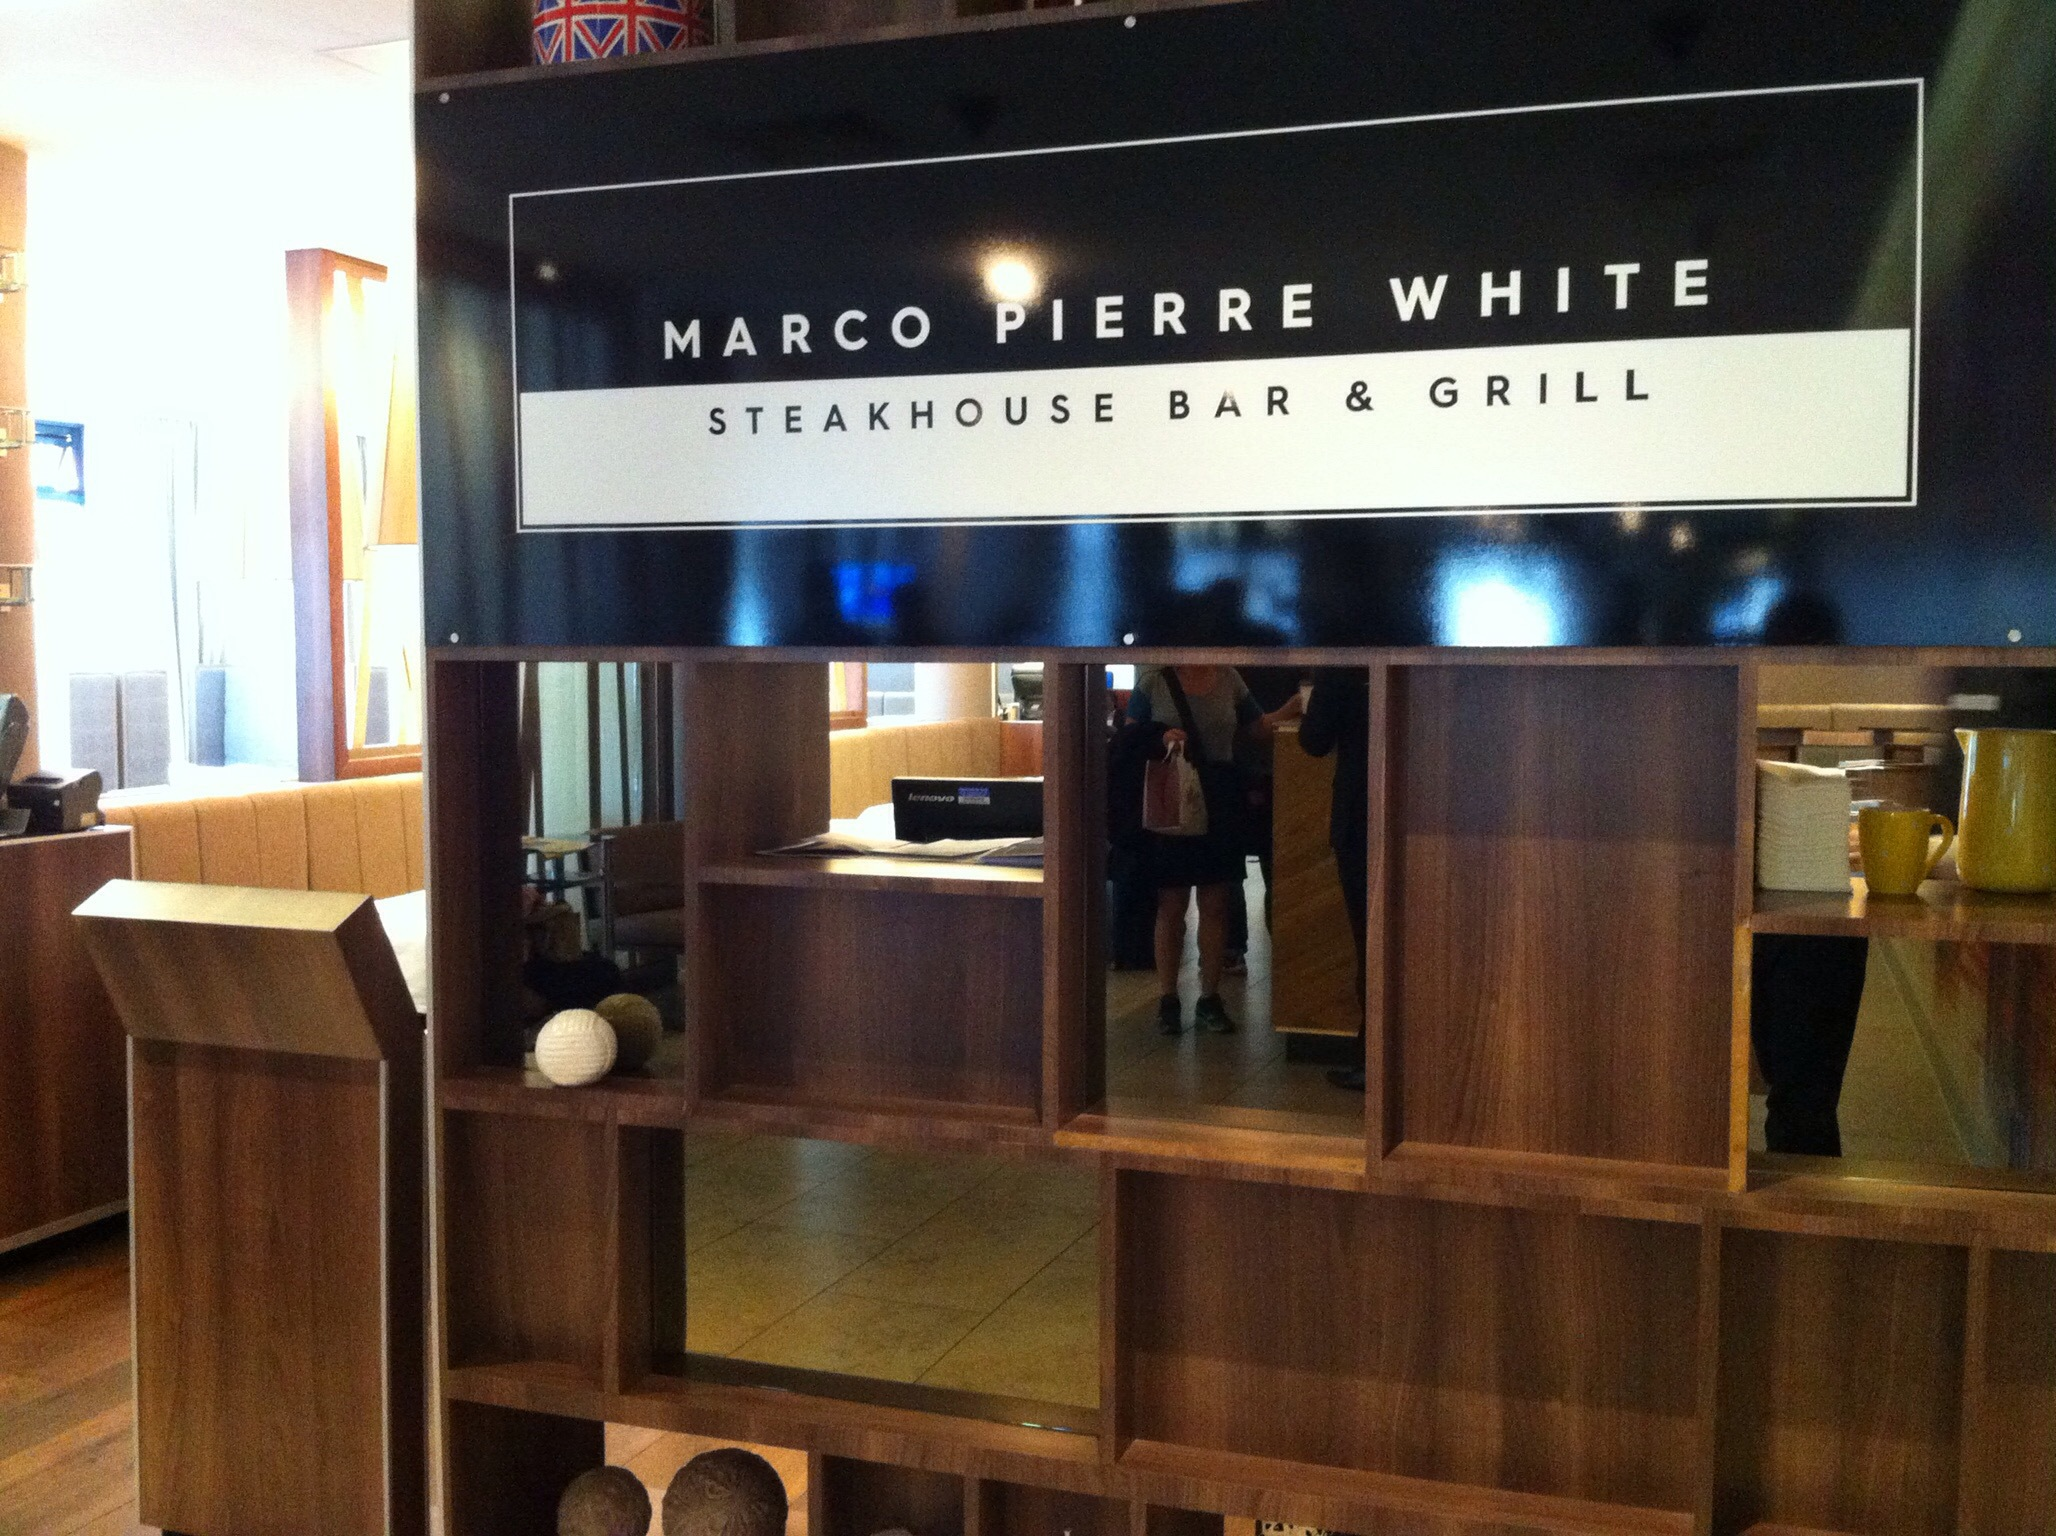 Bar En Pierre Marco Pierre White Steakhouse Bar Grill London